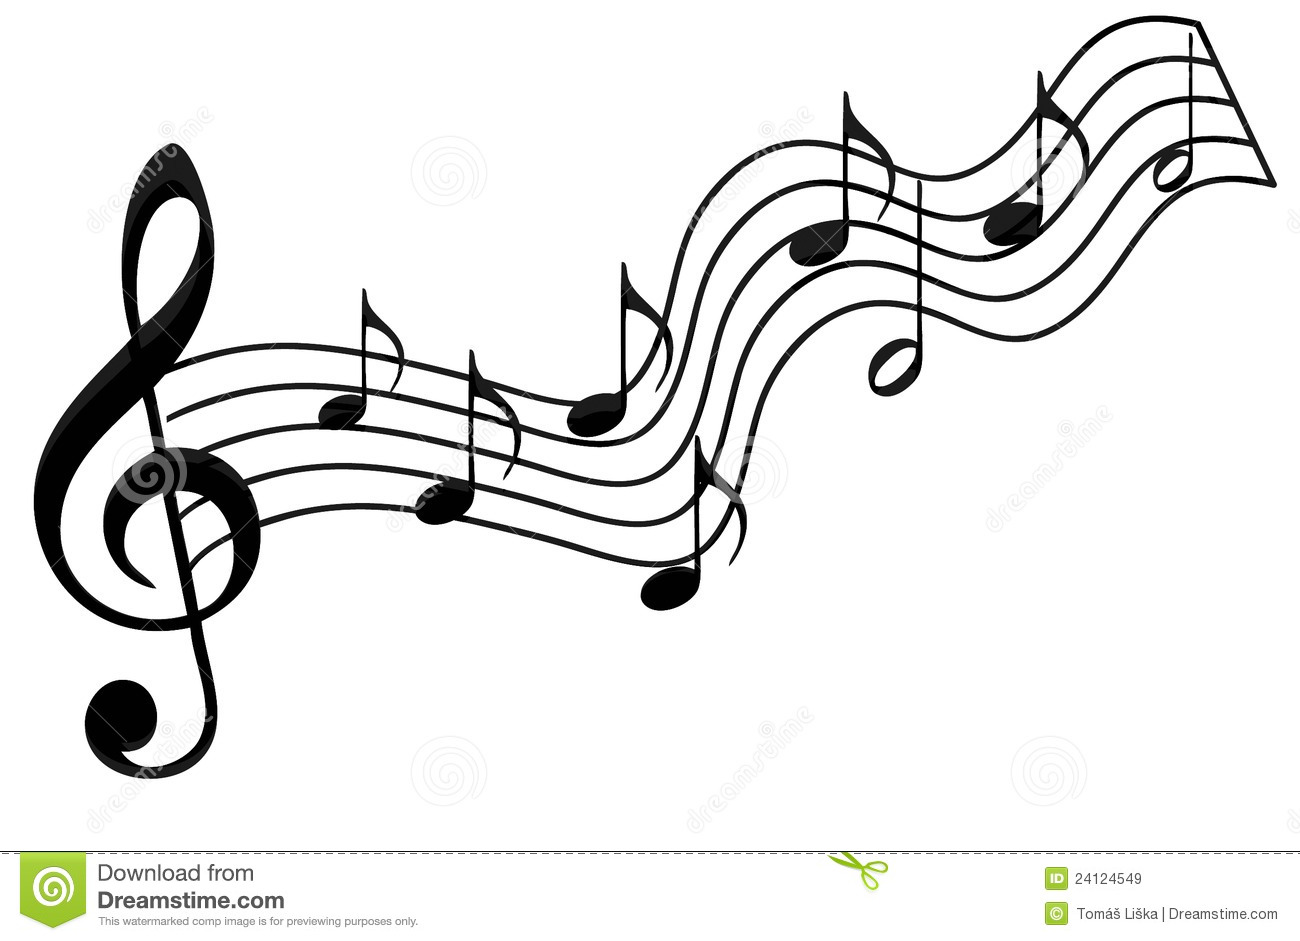 Top Music Notes Royalty Free Stock Images - Image: 24124549 RT19